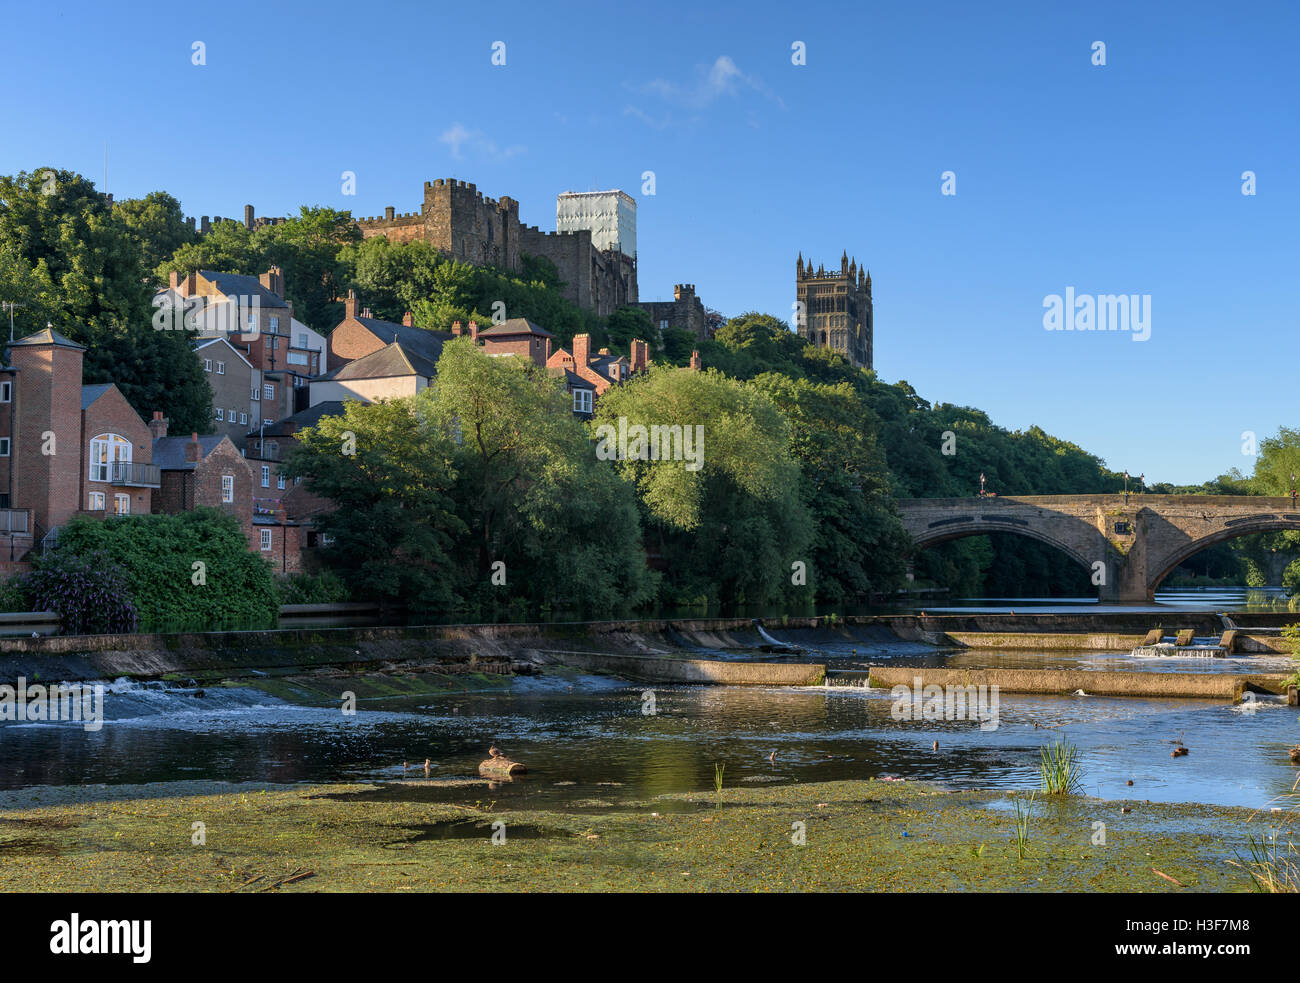 Durham City a historic town by the river wear, England. - Stock Image